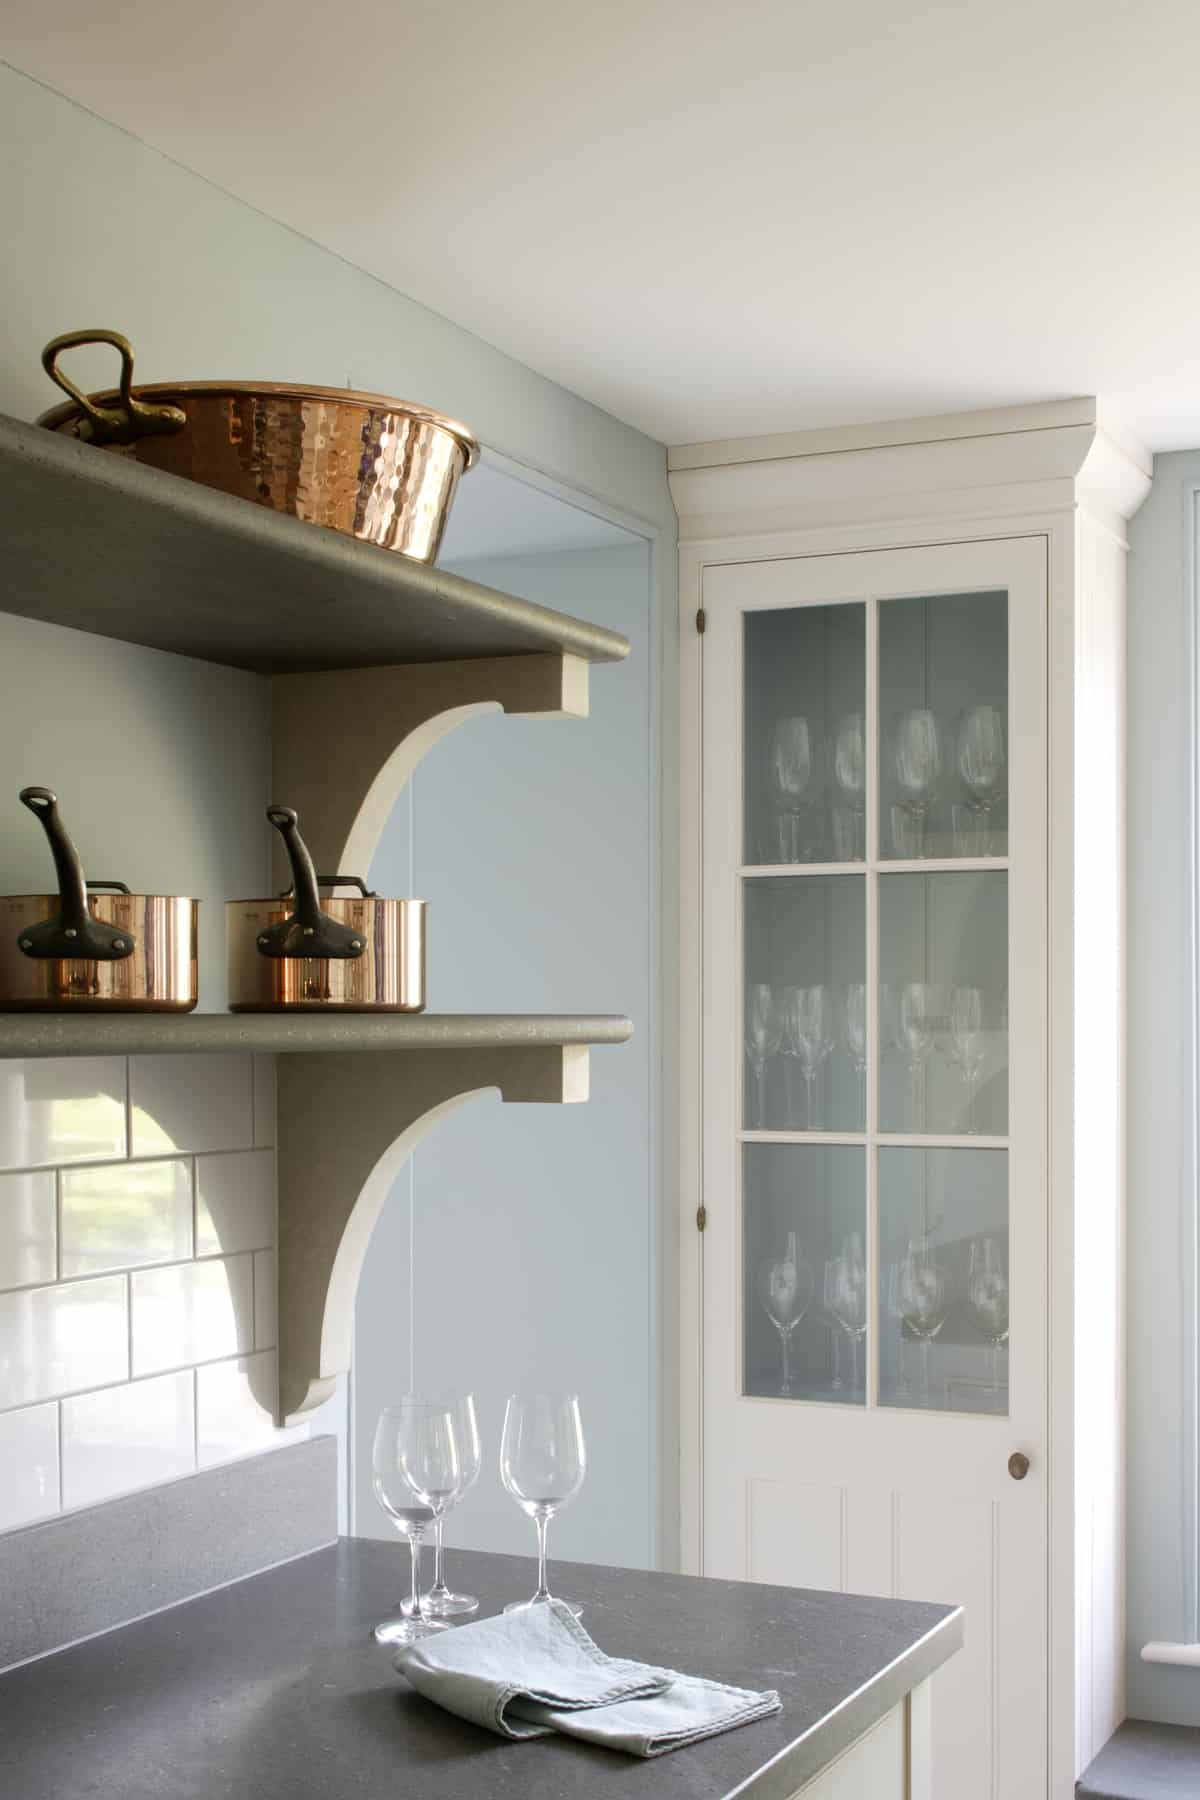 Beautiful edwardian style kitchen by artichoke for Edwardian kitchen